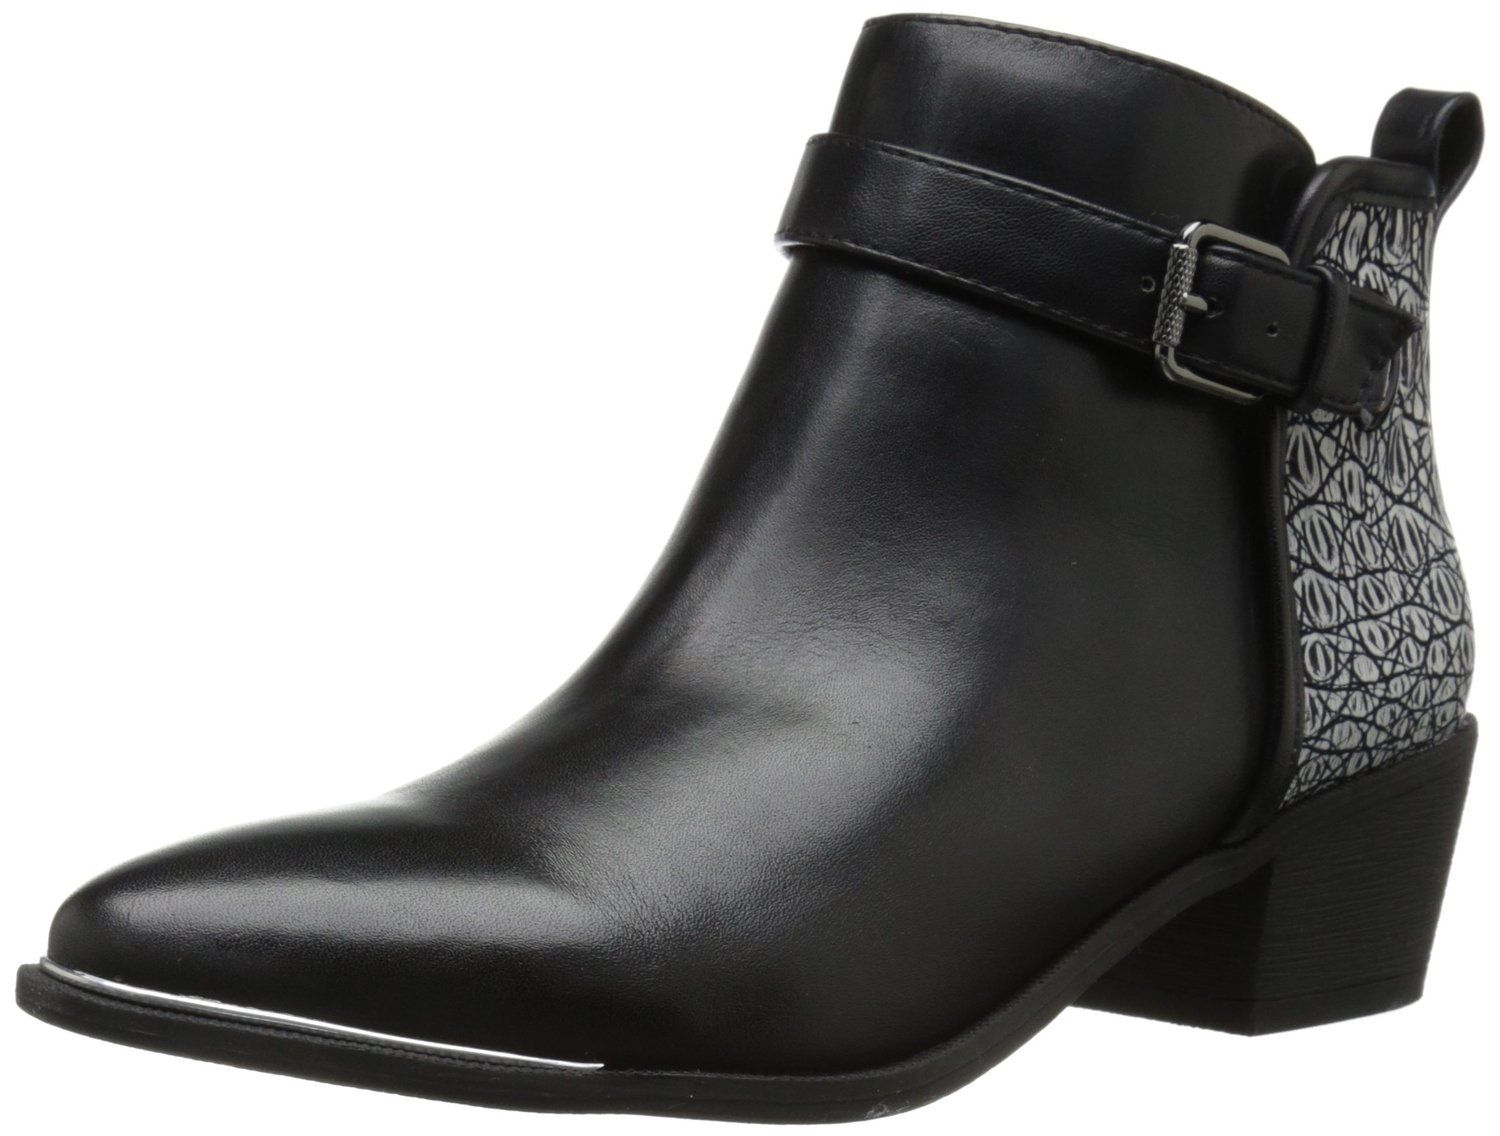 70978c6d48d2 Amazon.com  Circus by Sam Edelman Women s Harlow Boot  Circus by Sam ...